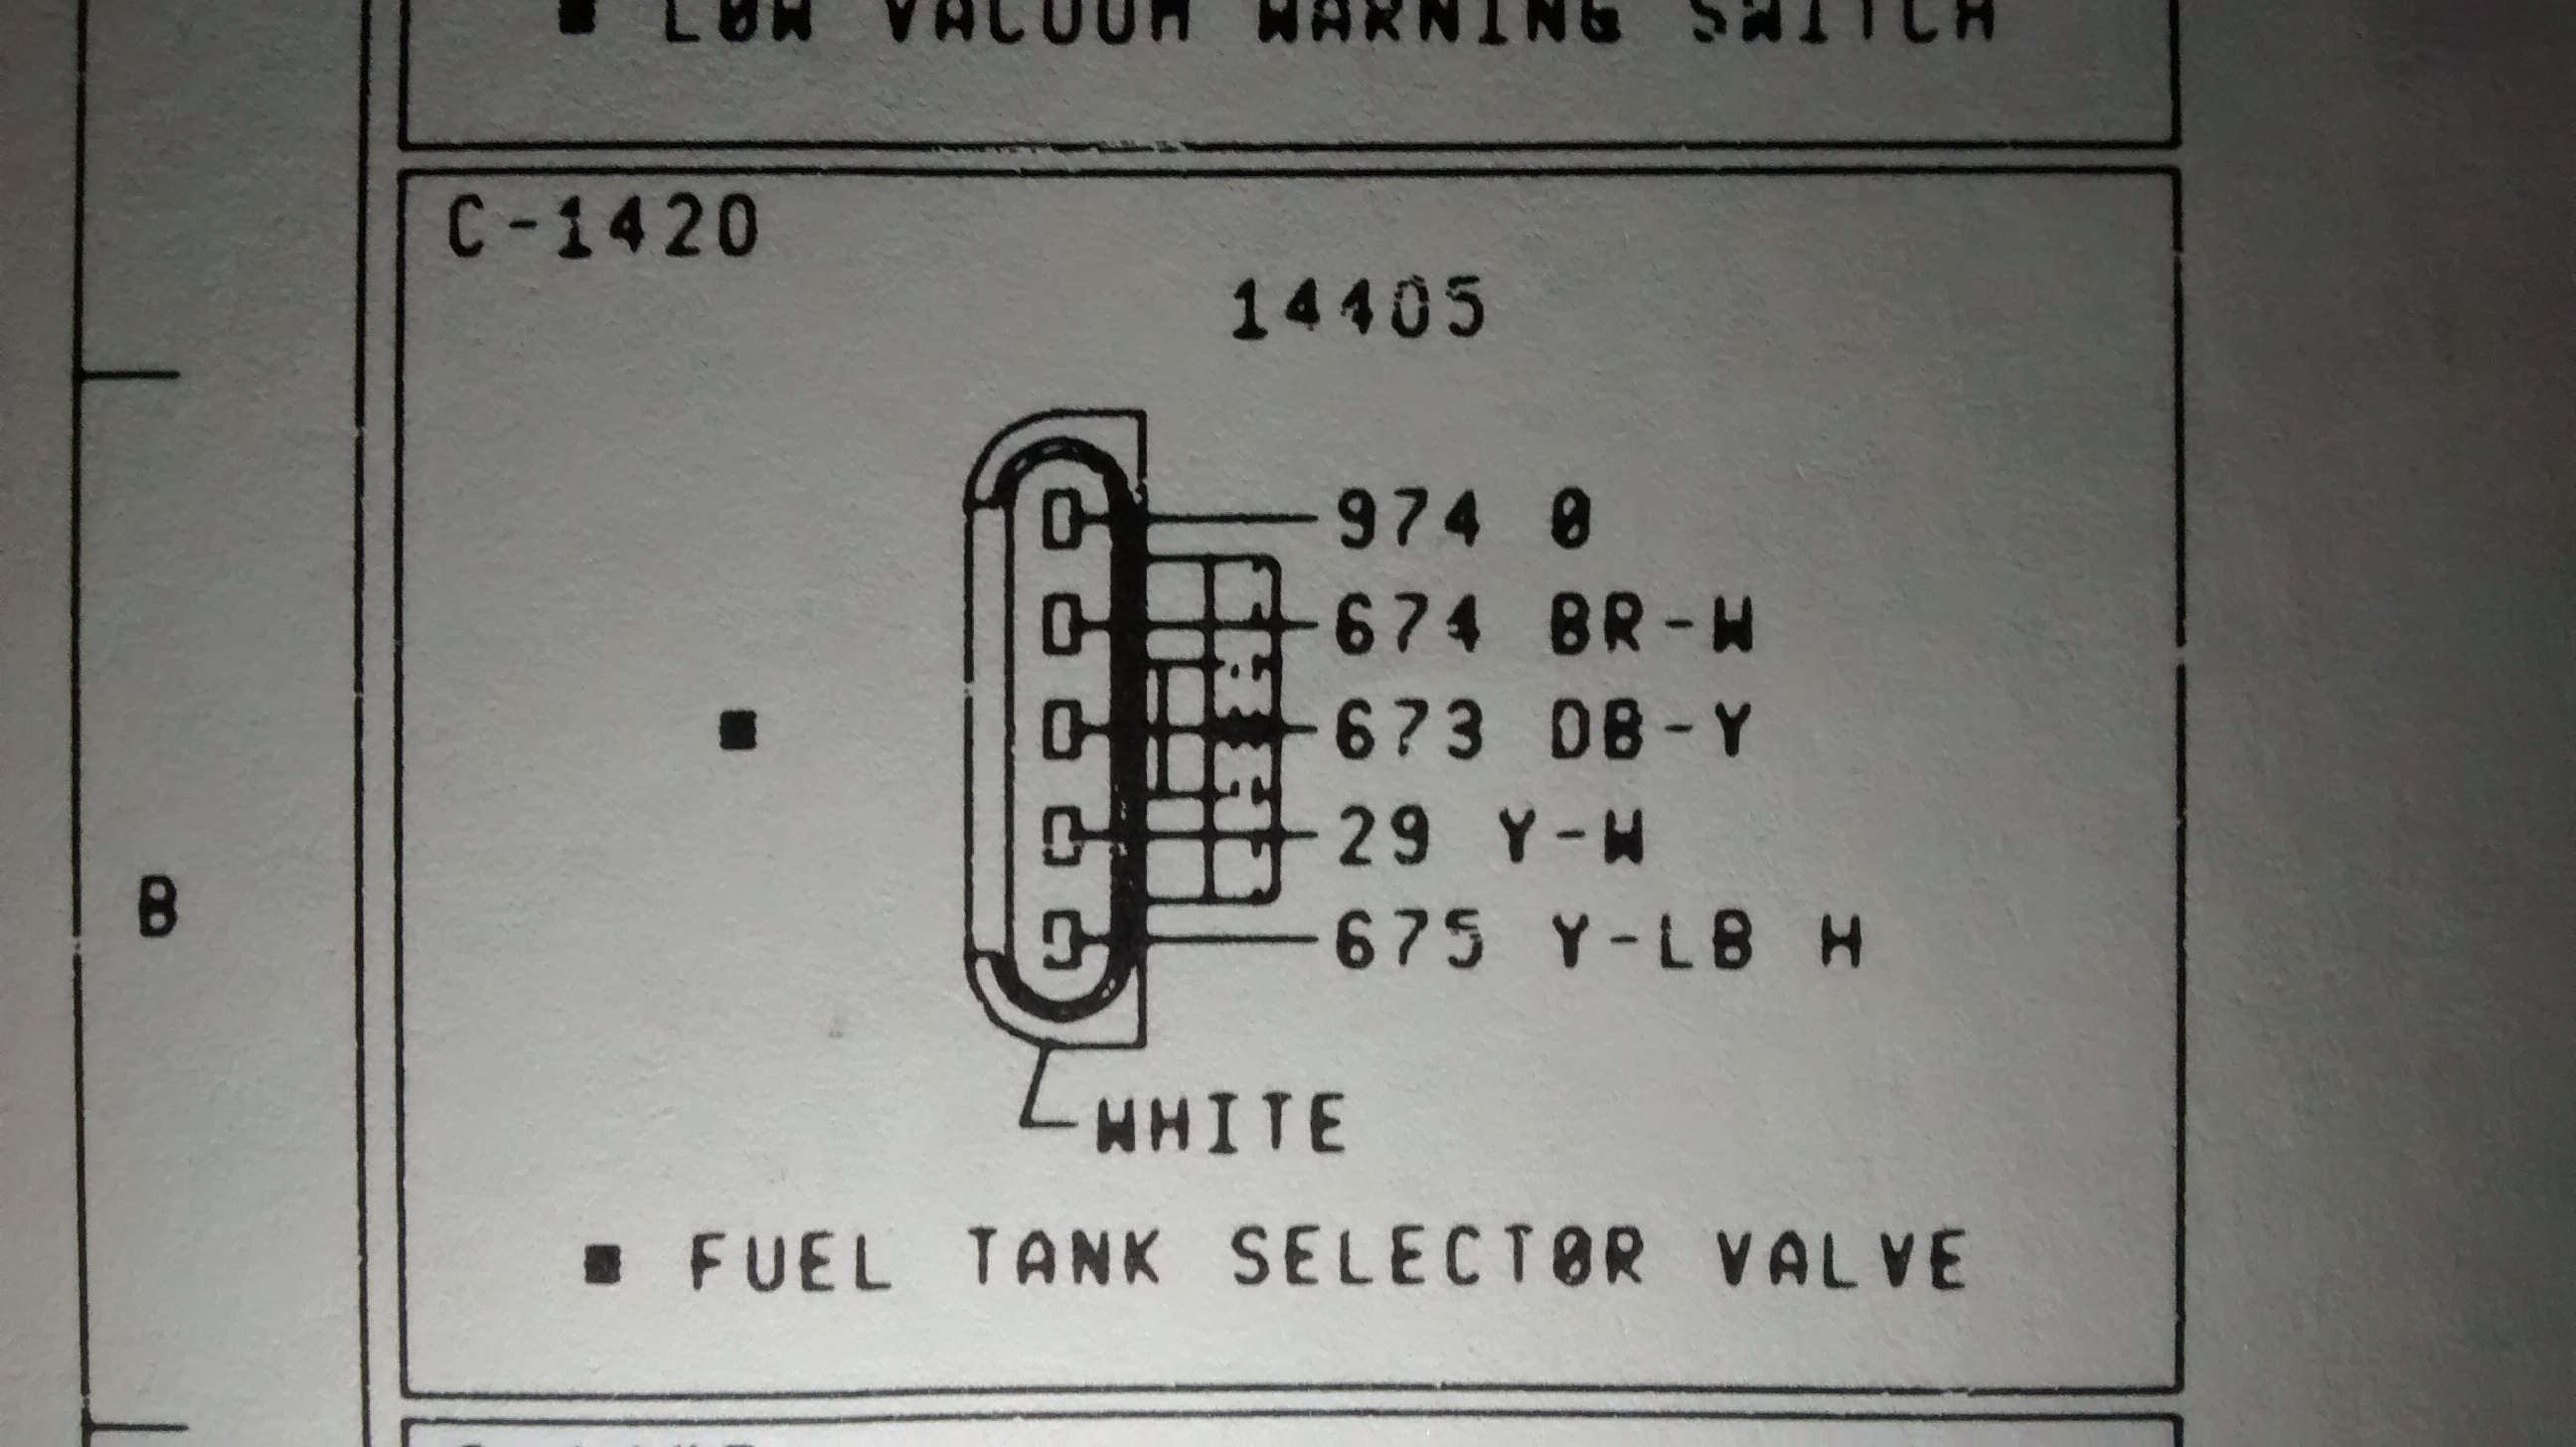 80810 1985 f250 6 9l idi tank selector valve wiring harness img_20151021_021037906 1985 f250 6 9l idi tank selector valve wiring for harness diesel ford fuel tank selector valve wiring diagram at readyjetset.co